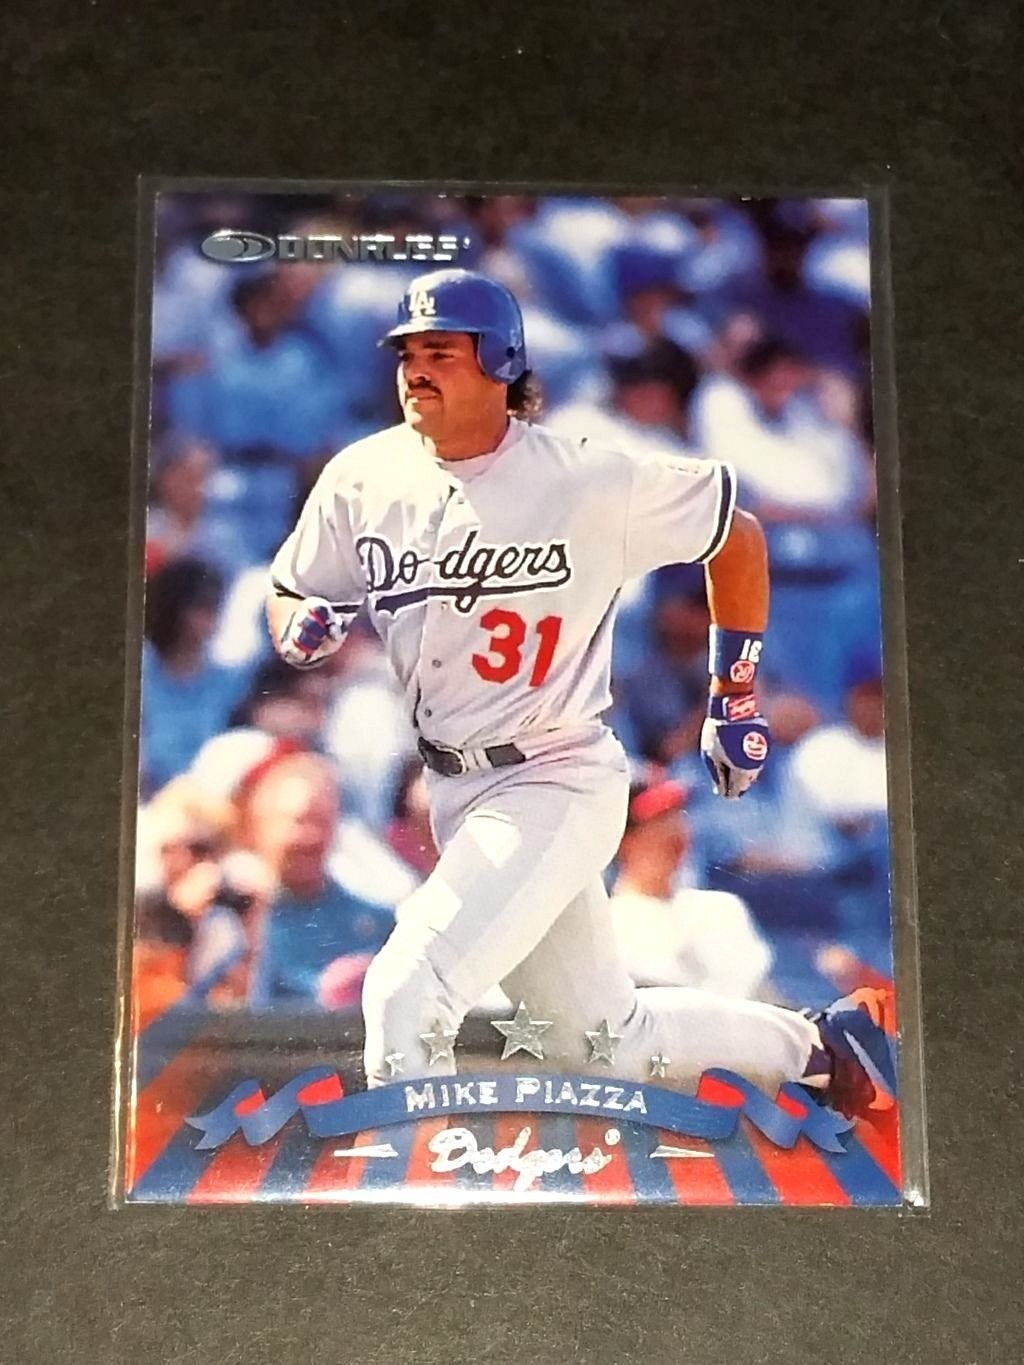 Mlb Mike Piazza Mets Dodgers 1997 Donruss 31 Gd Vg